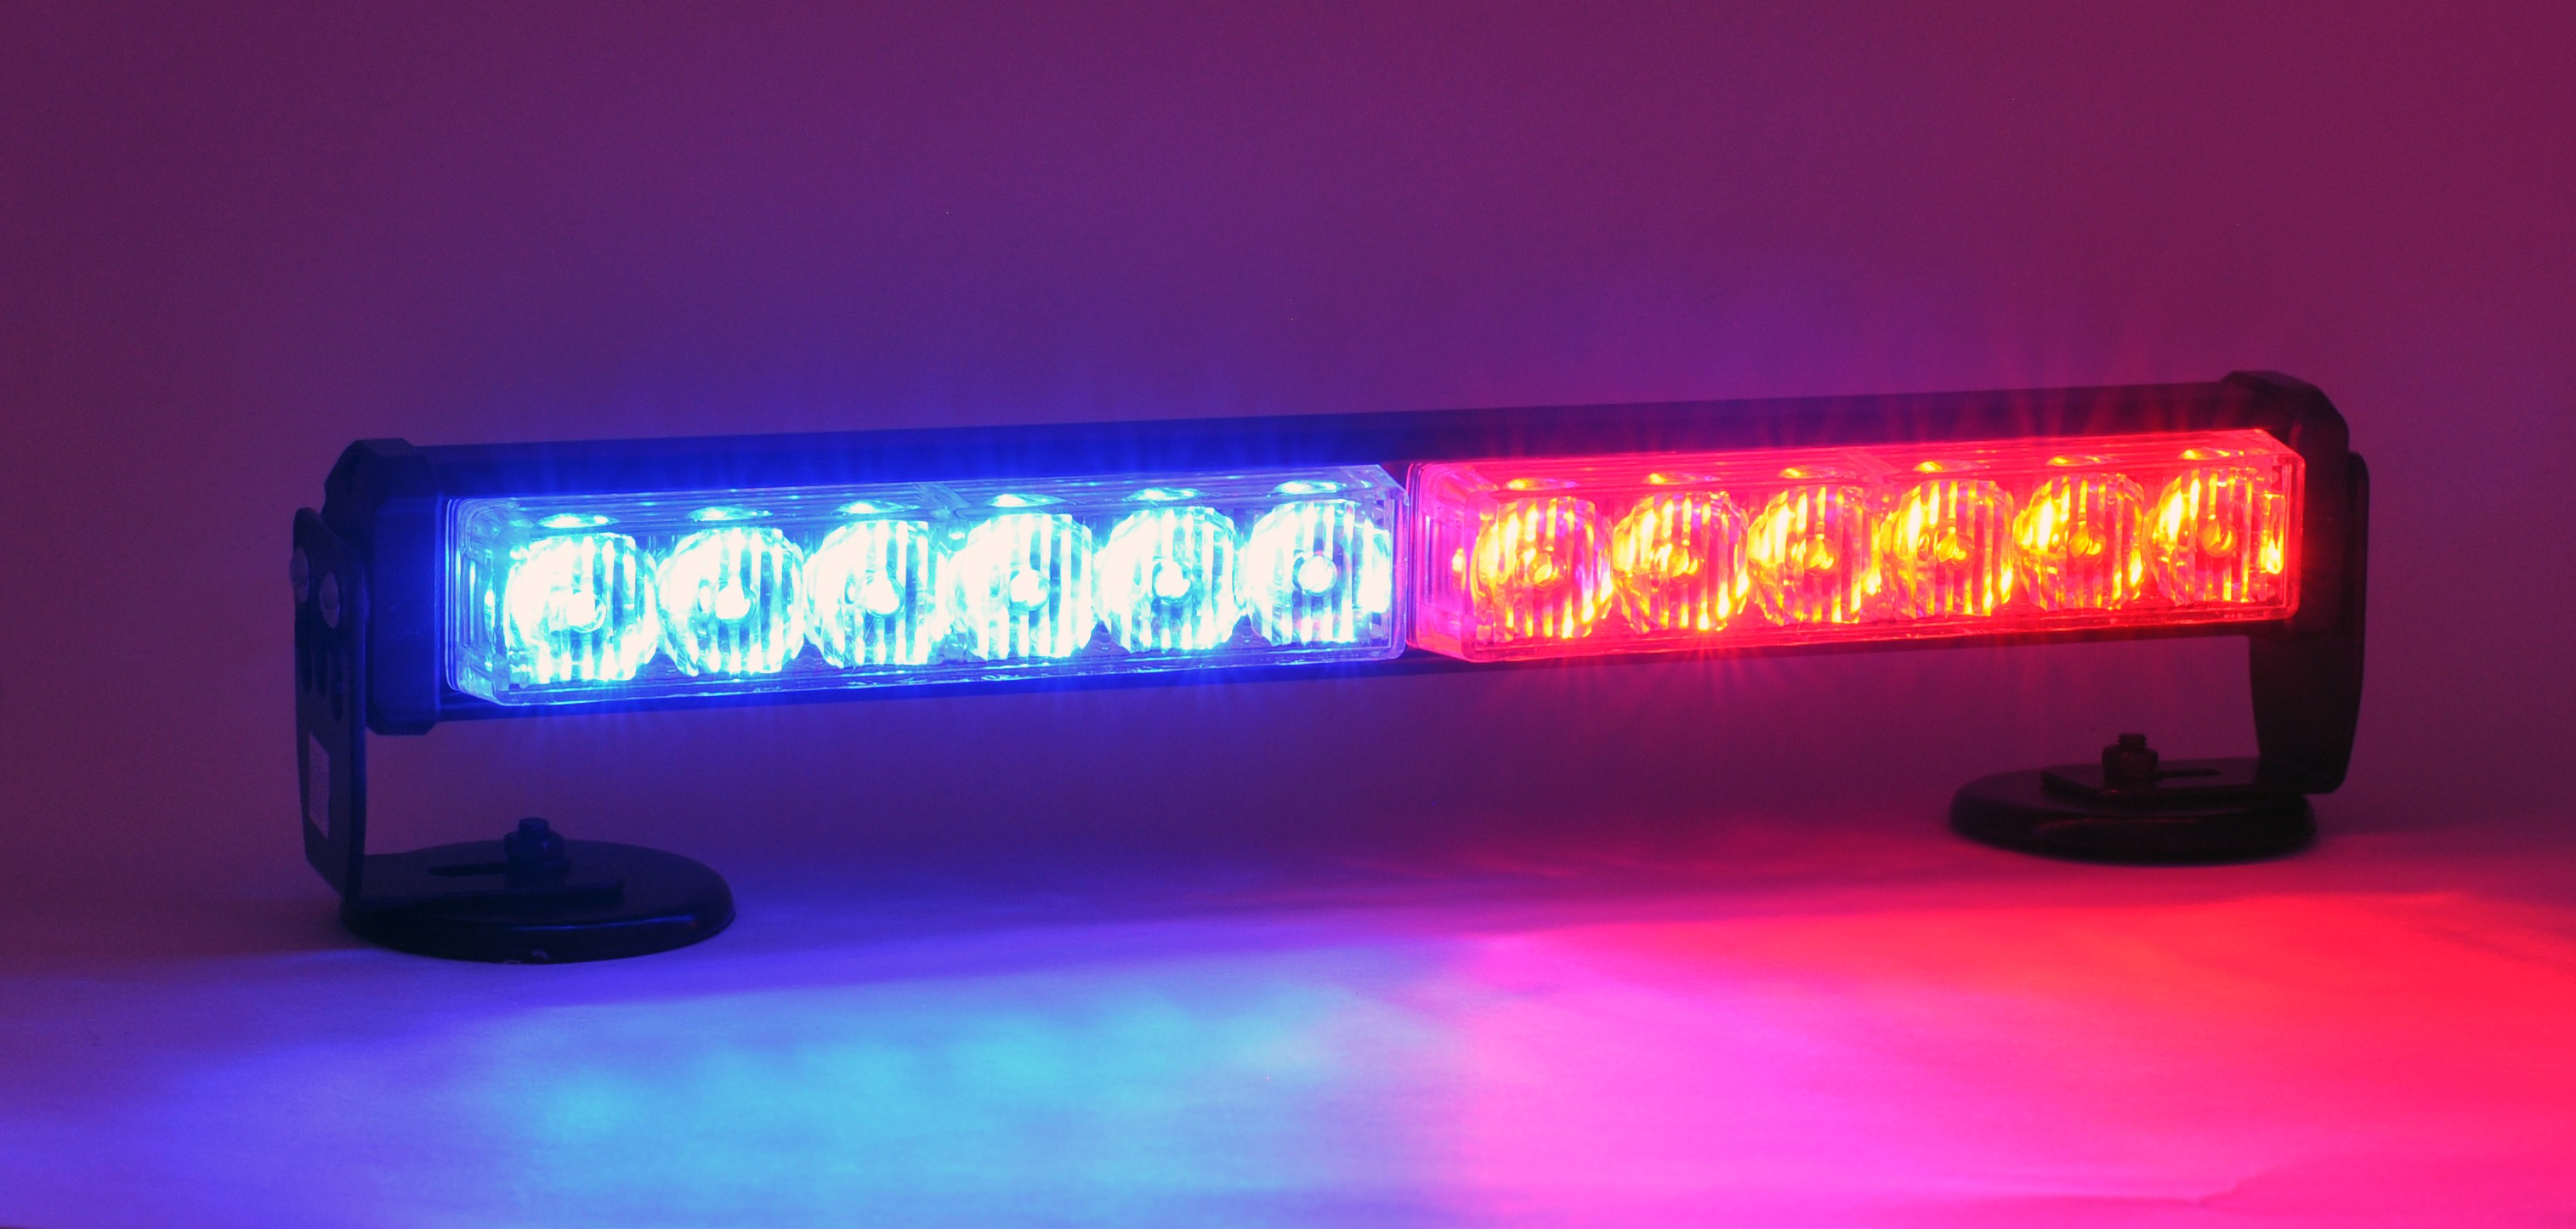 Police Interior Lights Interior Light Bar Red/